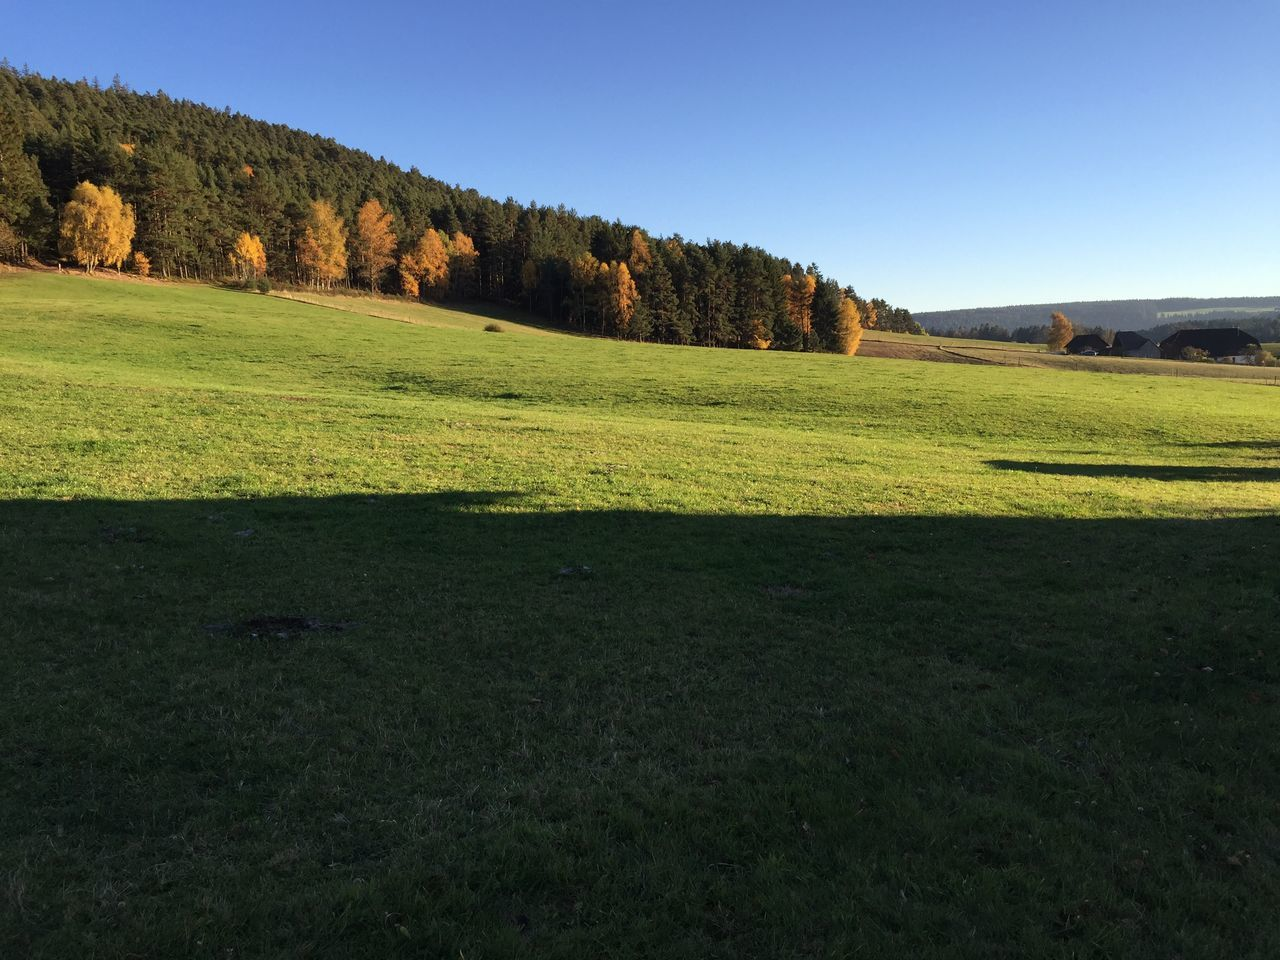 Panorama Sulzbach Sulzbach Panoramic Black Forest Autumn Autumn Colors Blue Sky Baden-Württemberg  Schwarzwald Green Grass Wanderlust EyeEm Nature Lover